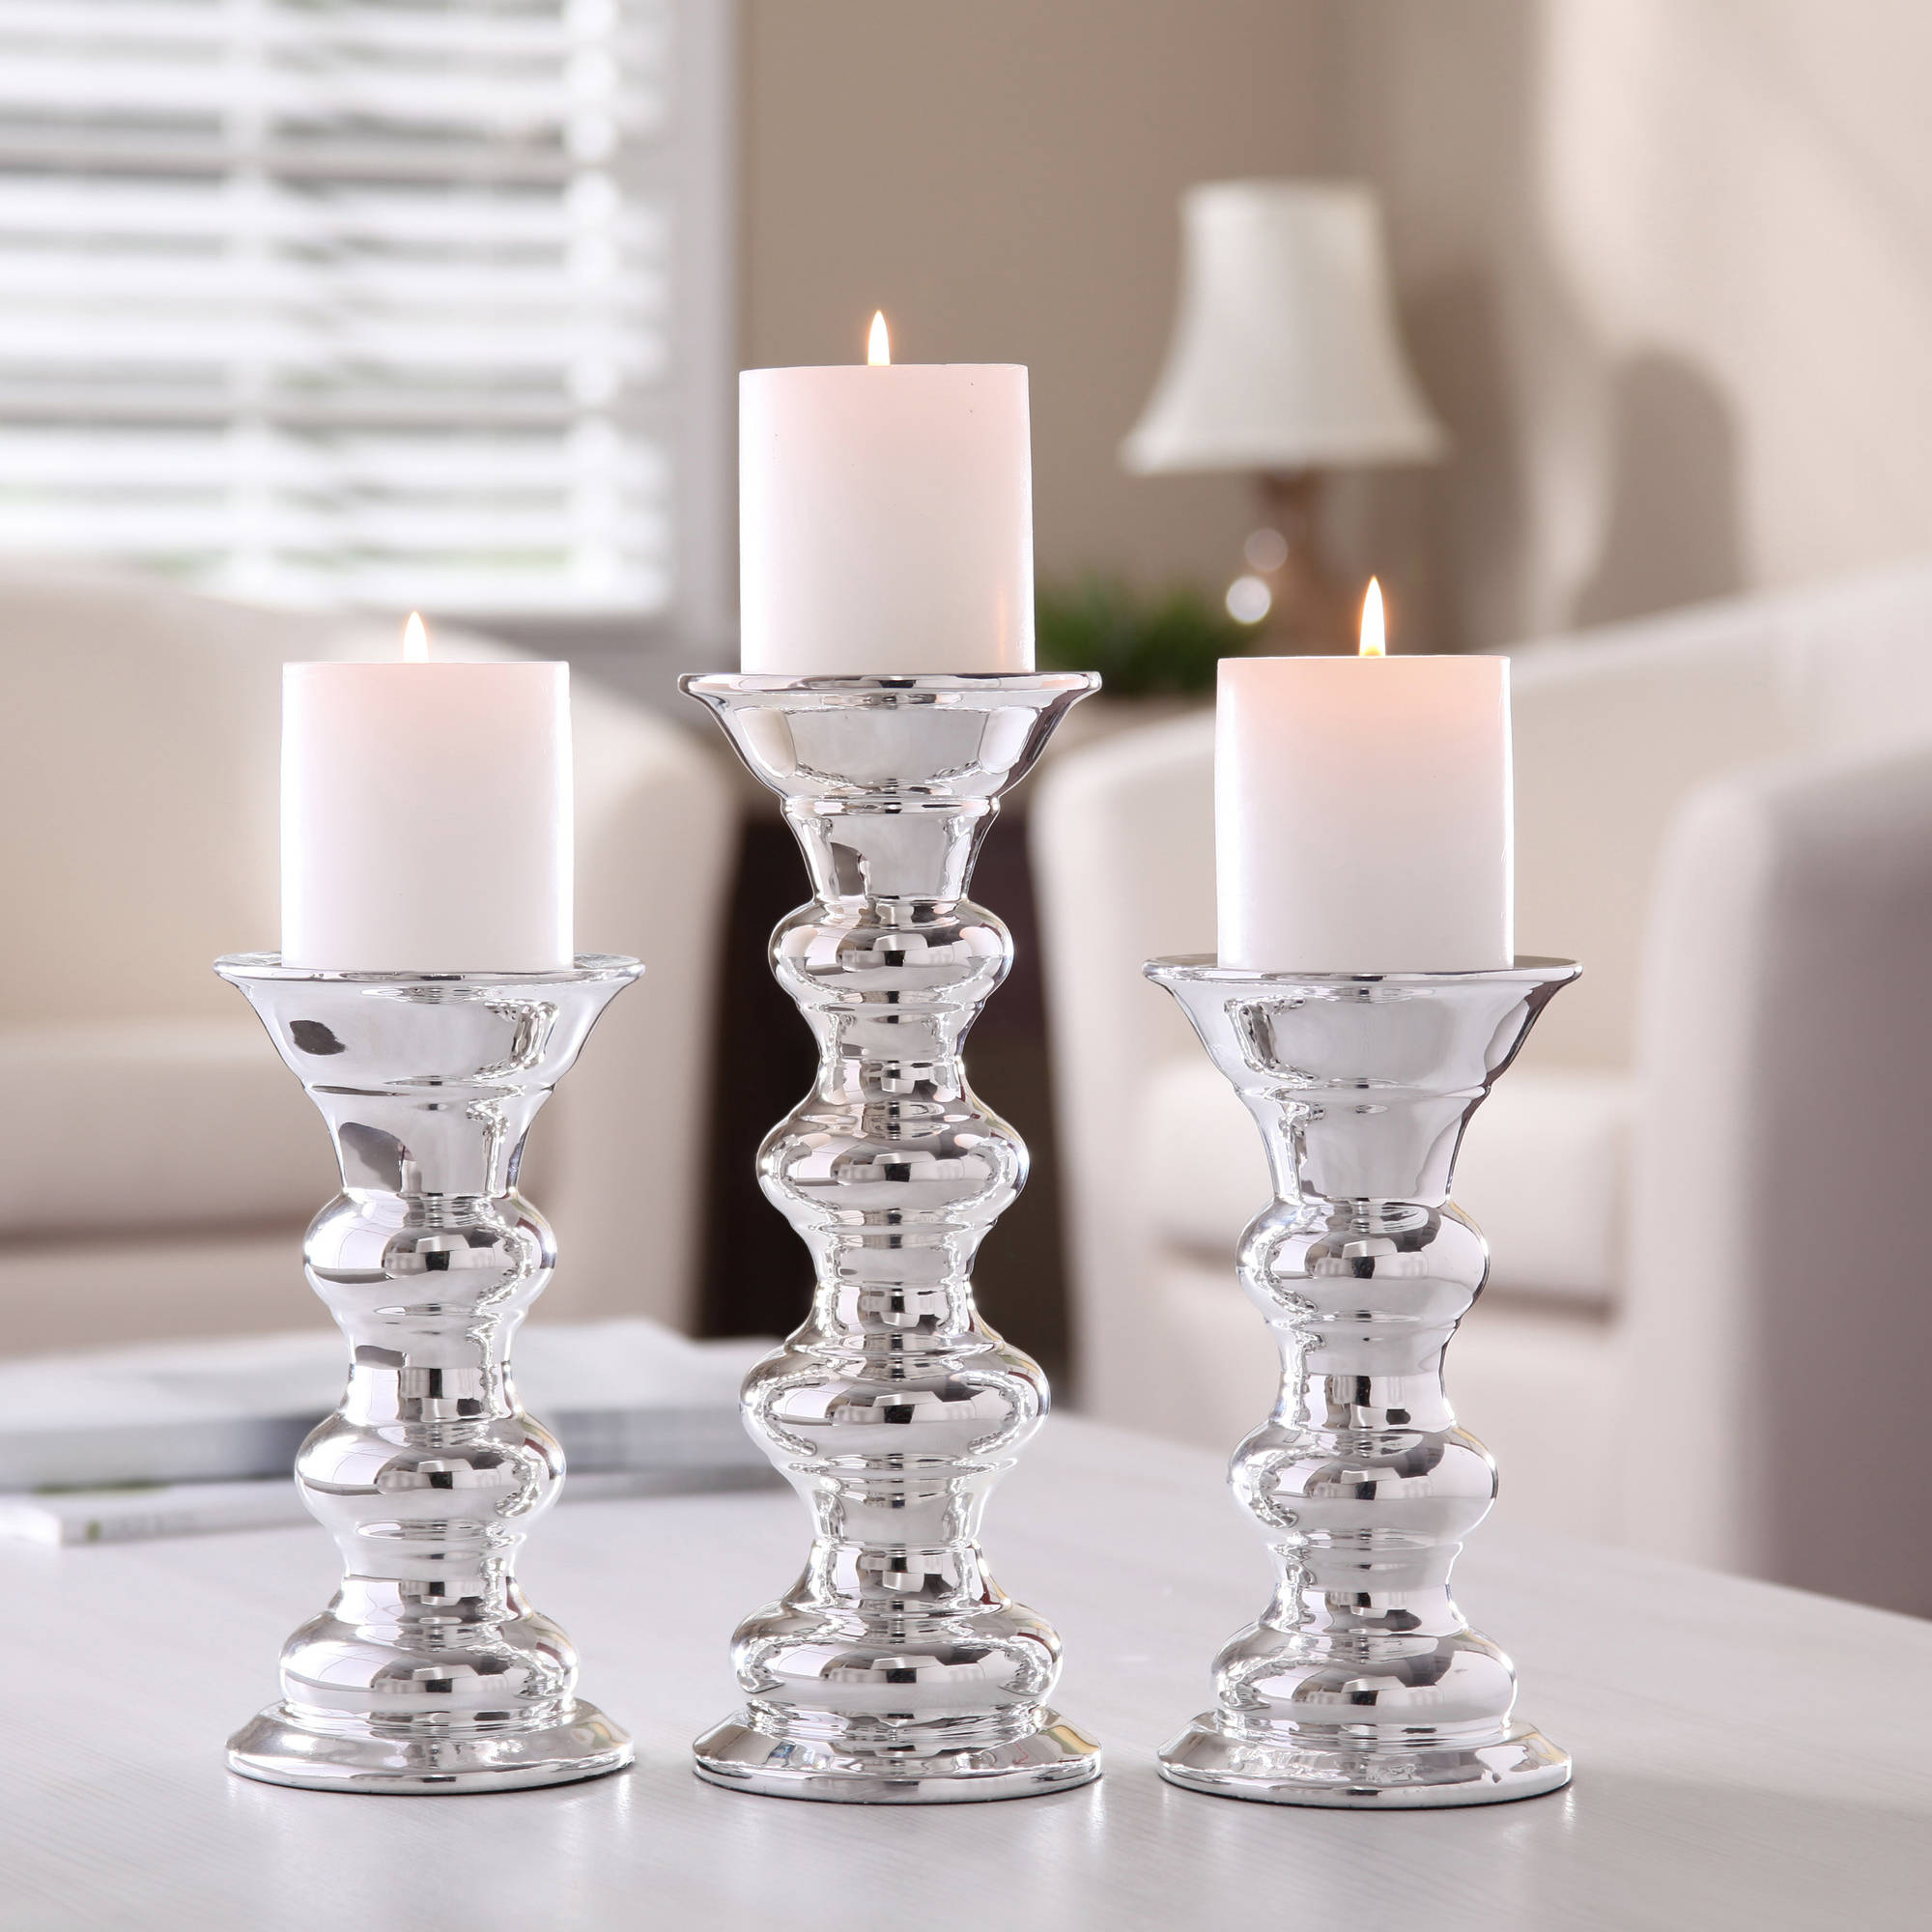 Better Homes and Gardens Ceramic Metallic Pillar Candle Holders, Set of 3